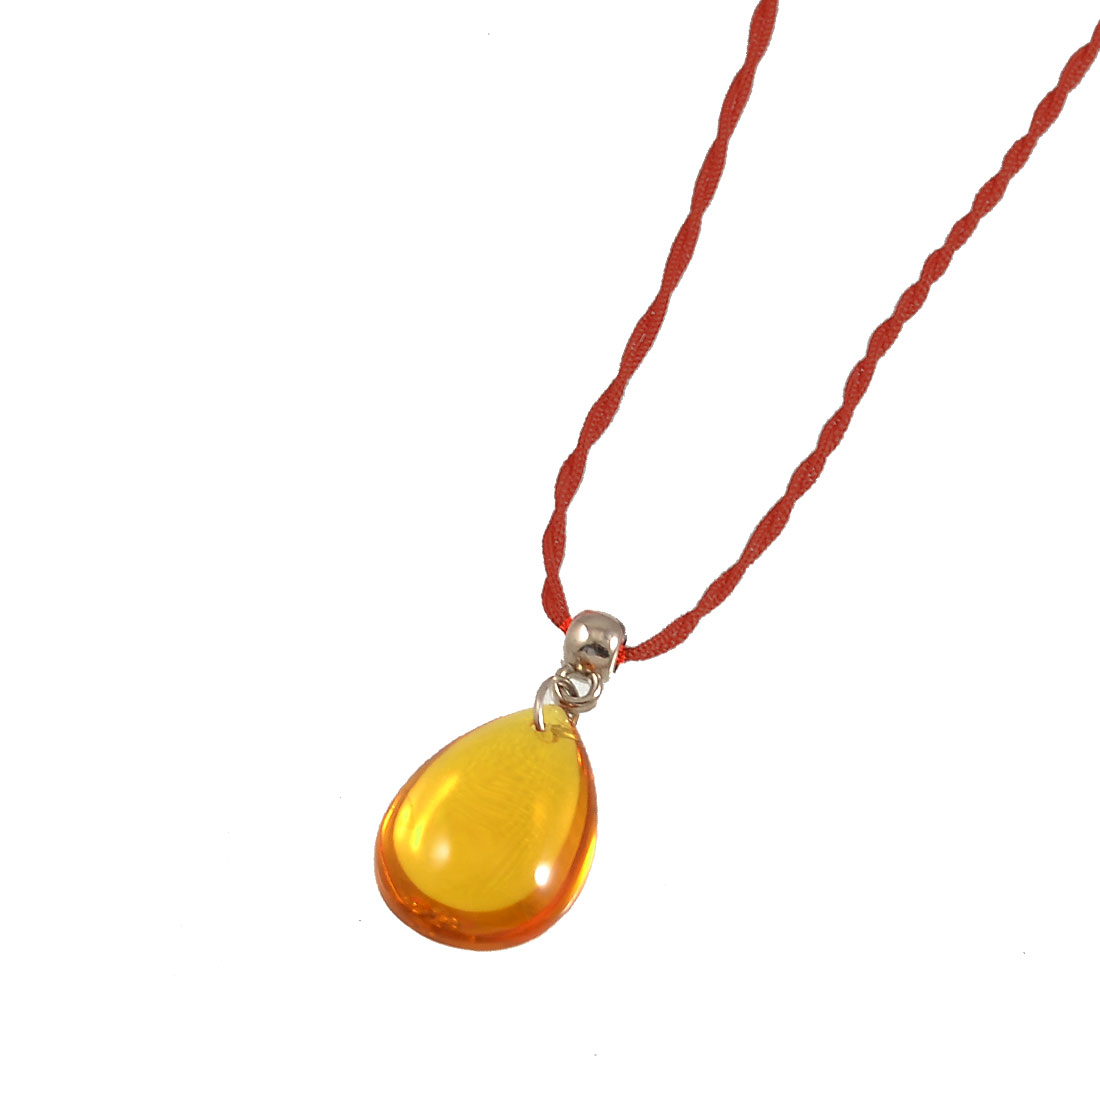 Plastic Amber Teardrop Crystal Pendant Knotted Closure Necklace